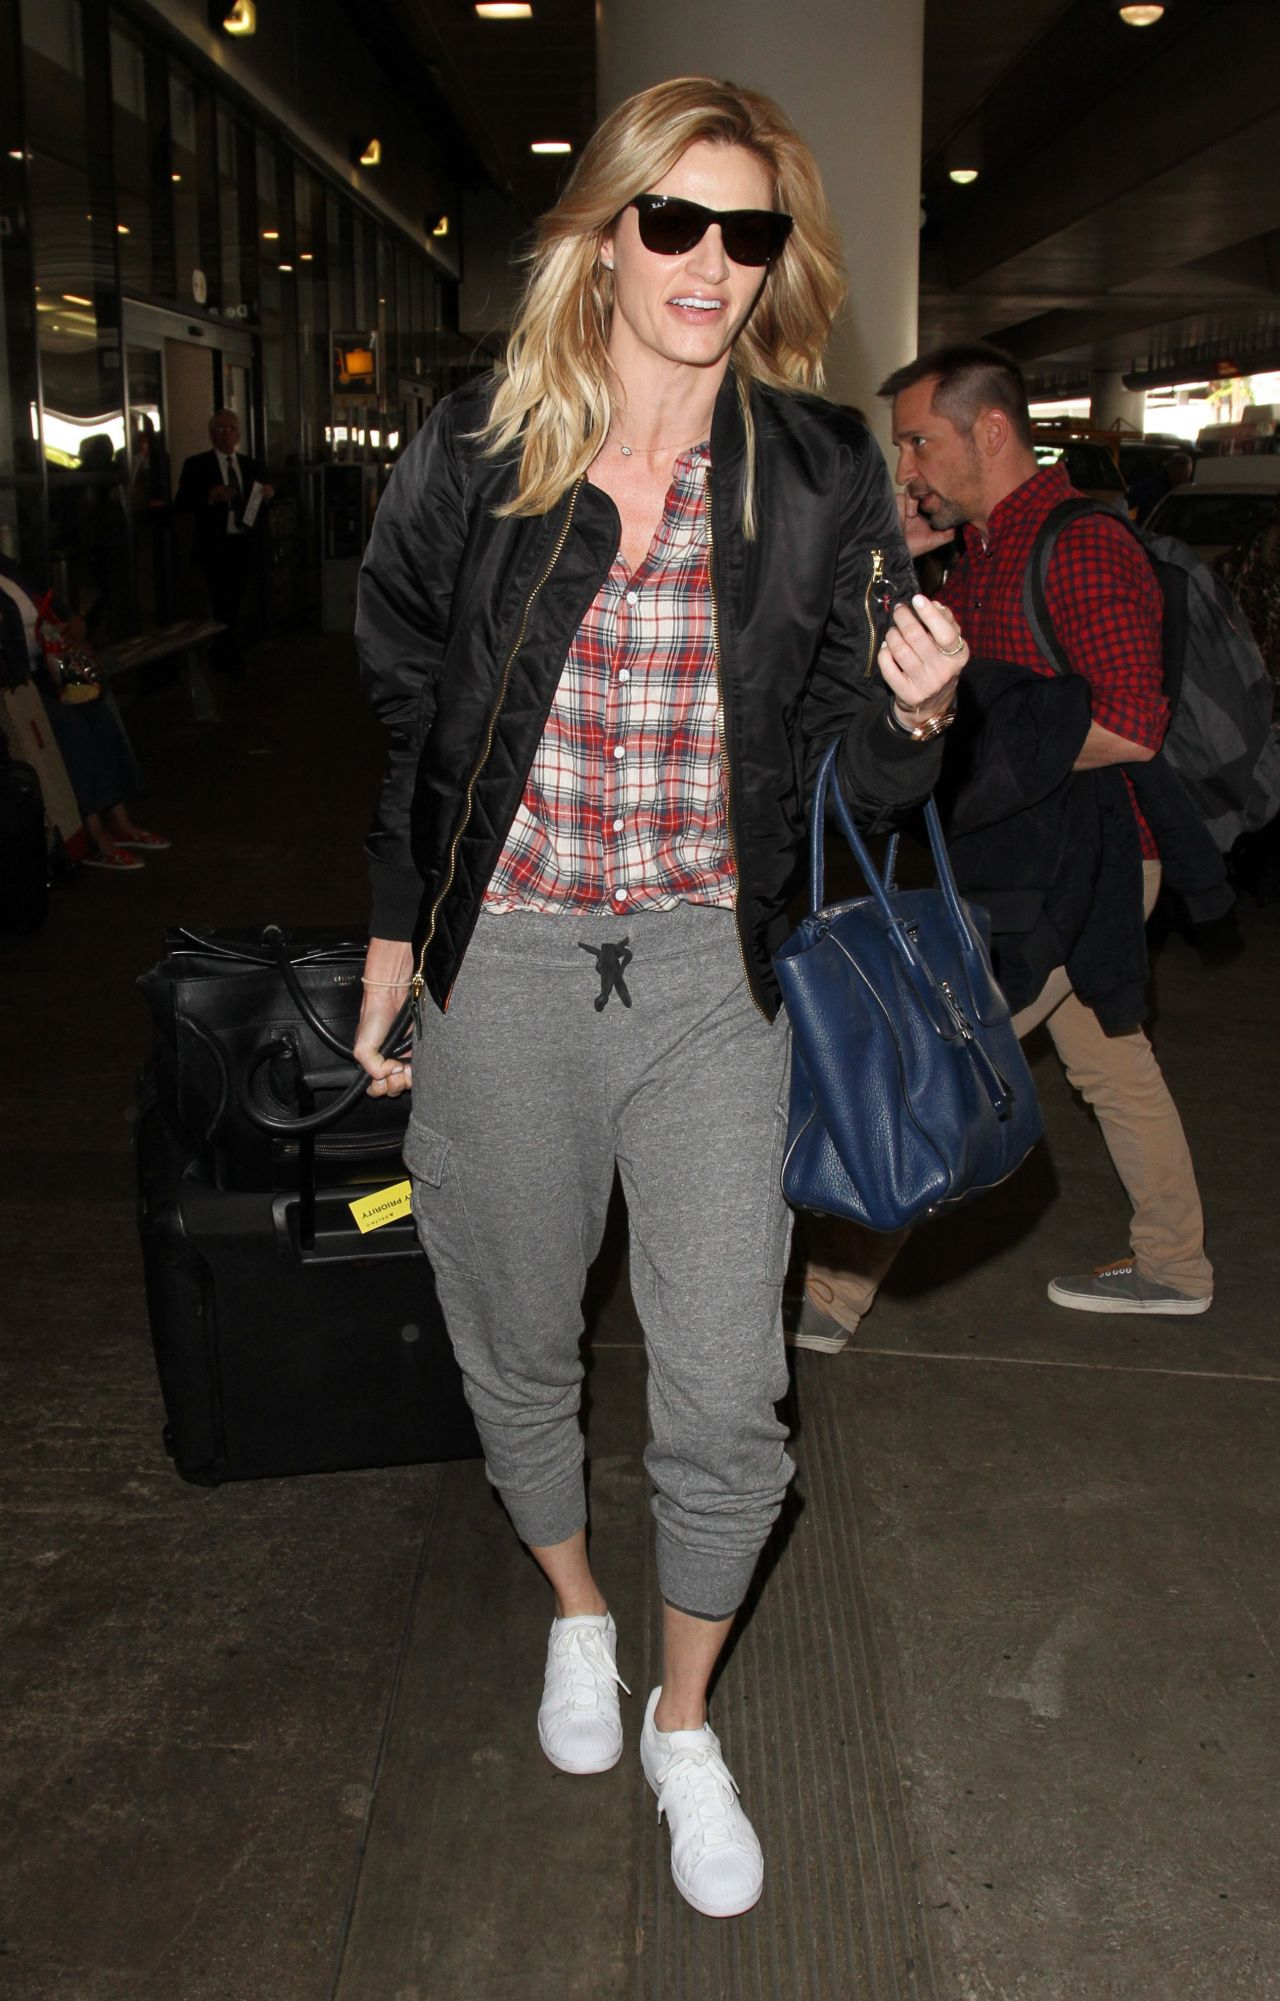 Erin Andrews At Lax Airport 4 1 2016